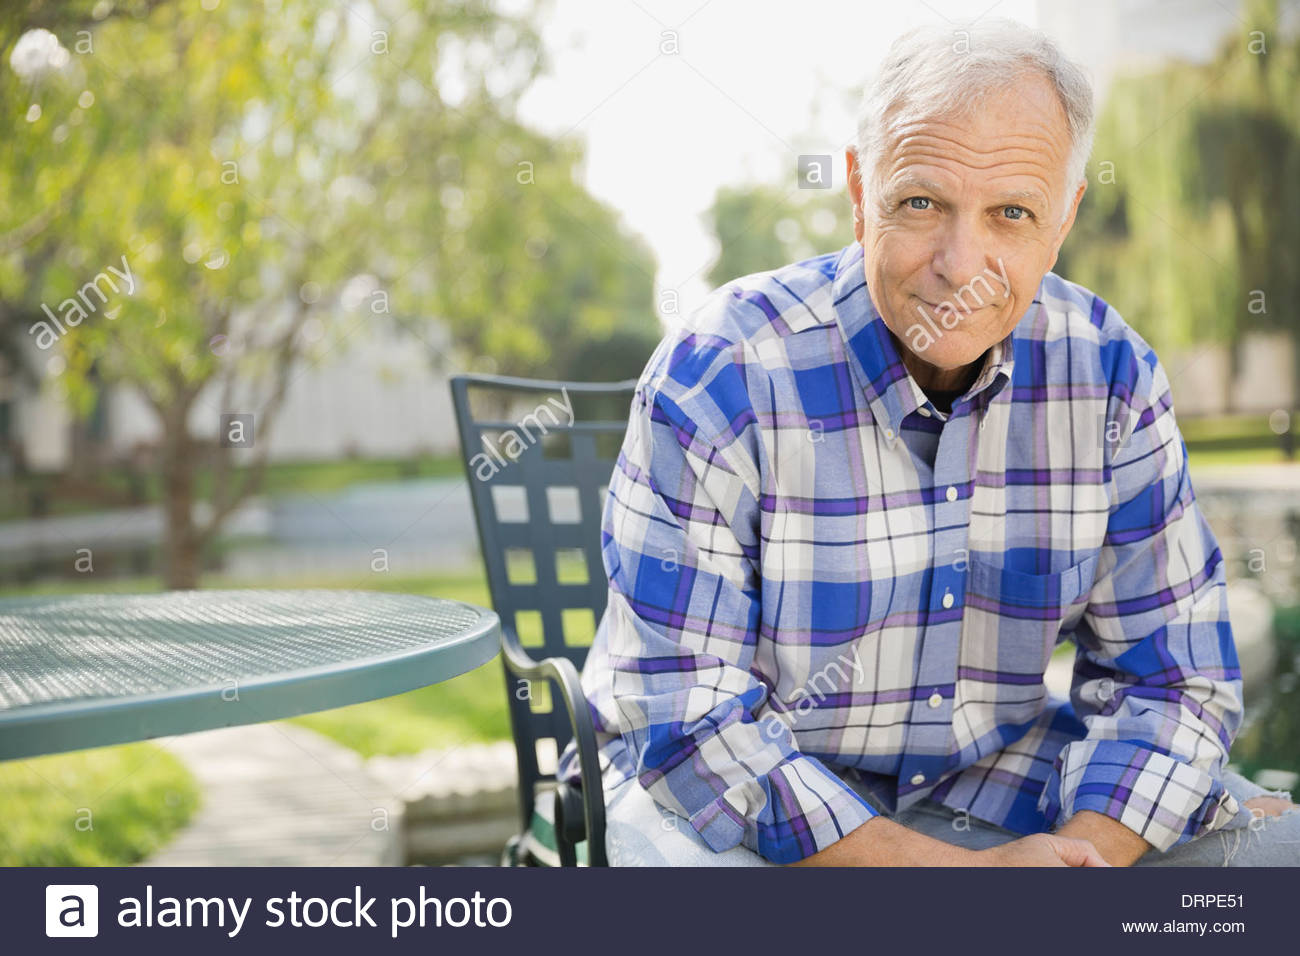 Portrait of senior man sitting outdoors - Stock Image